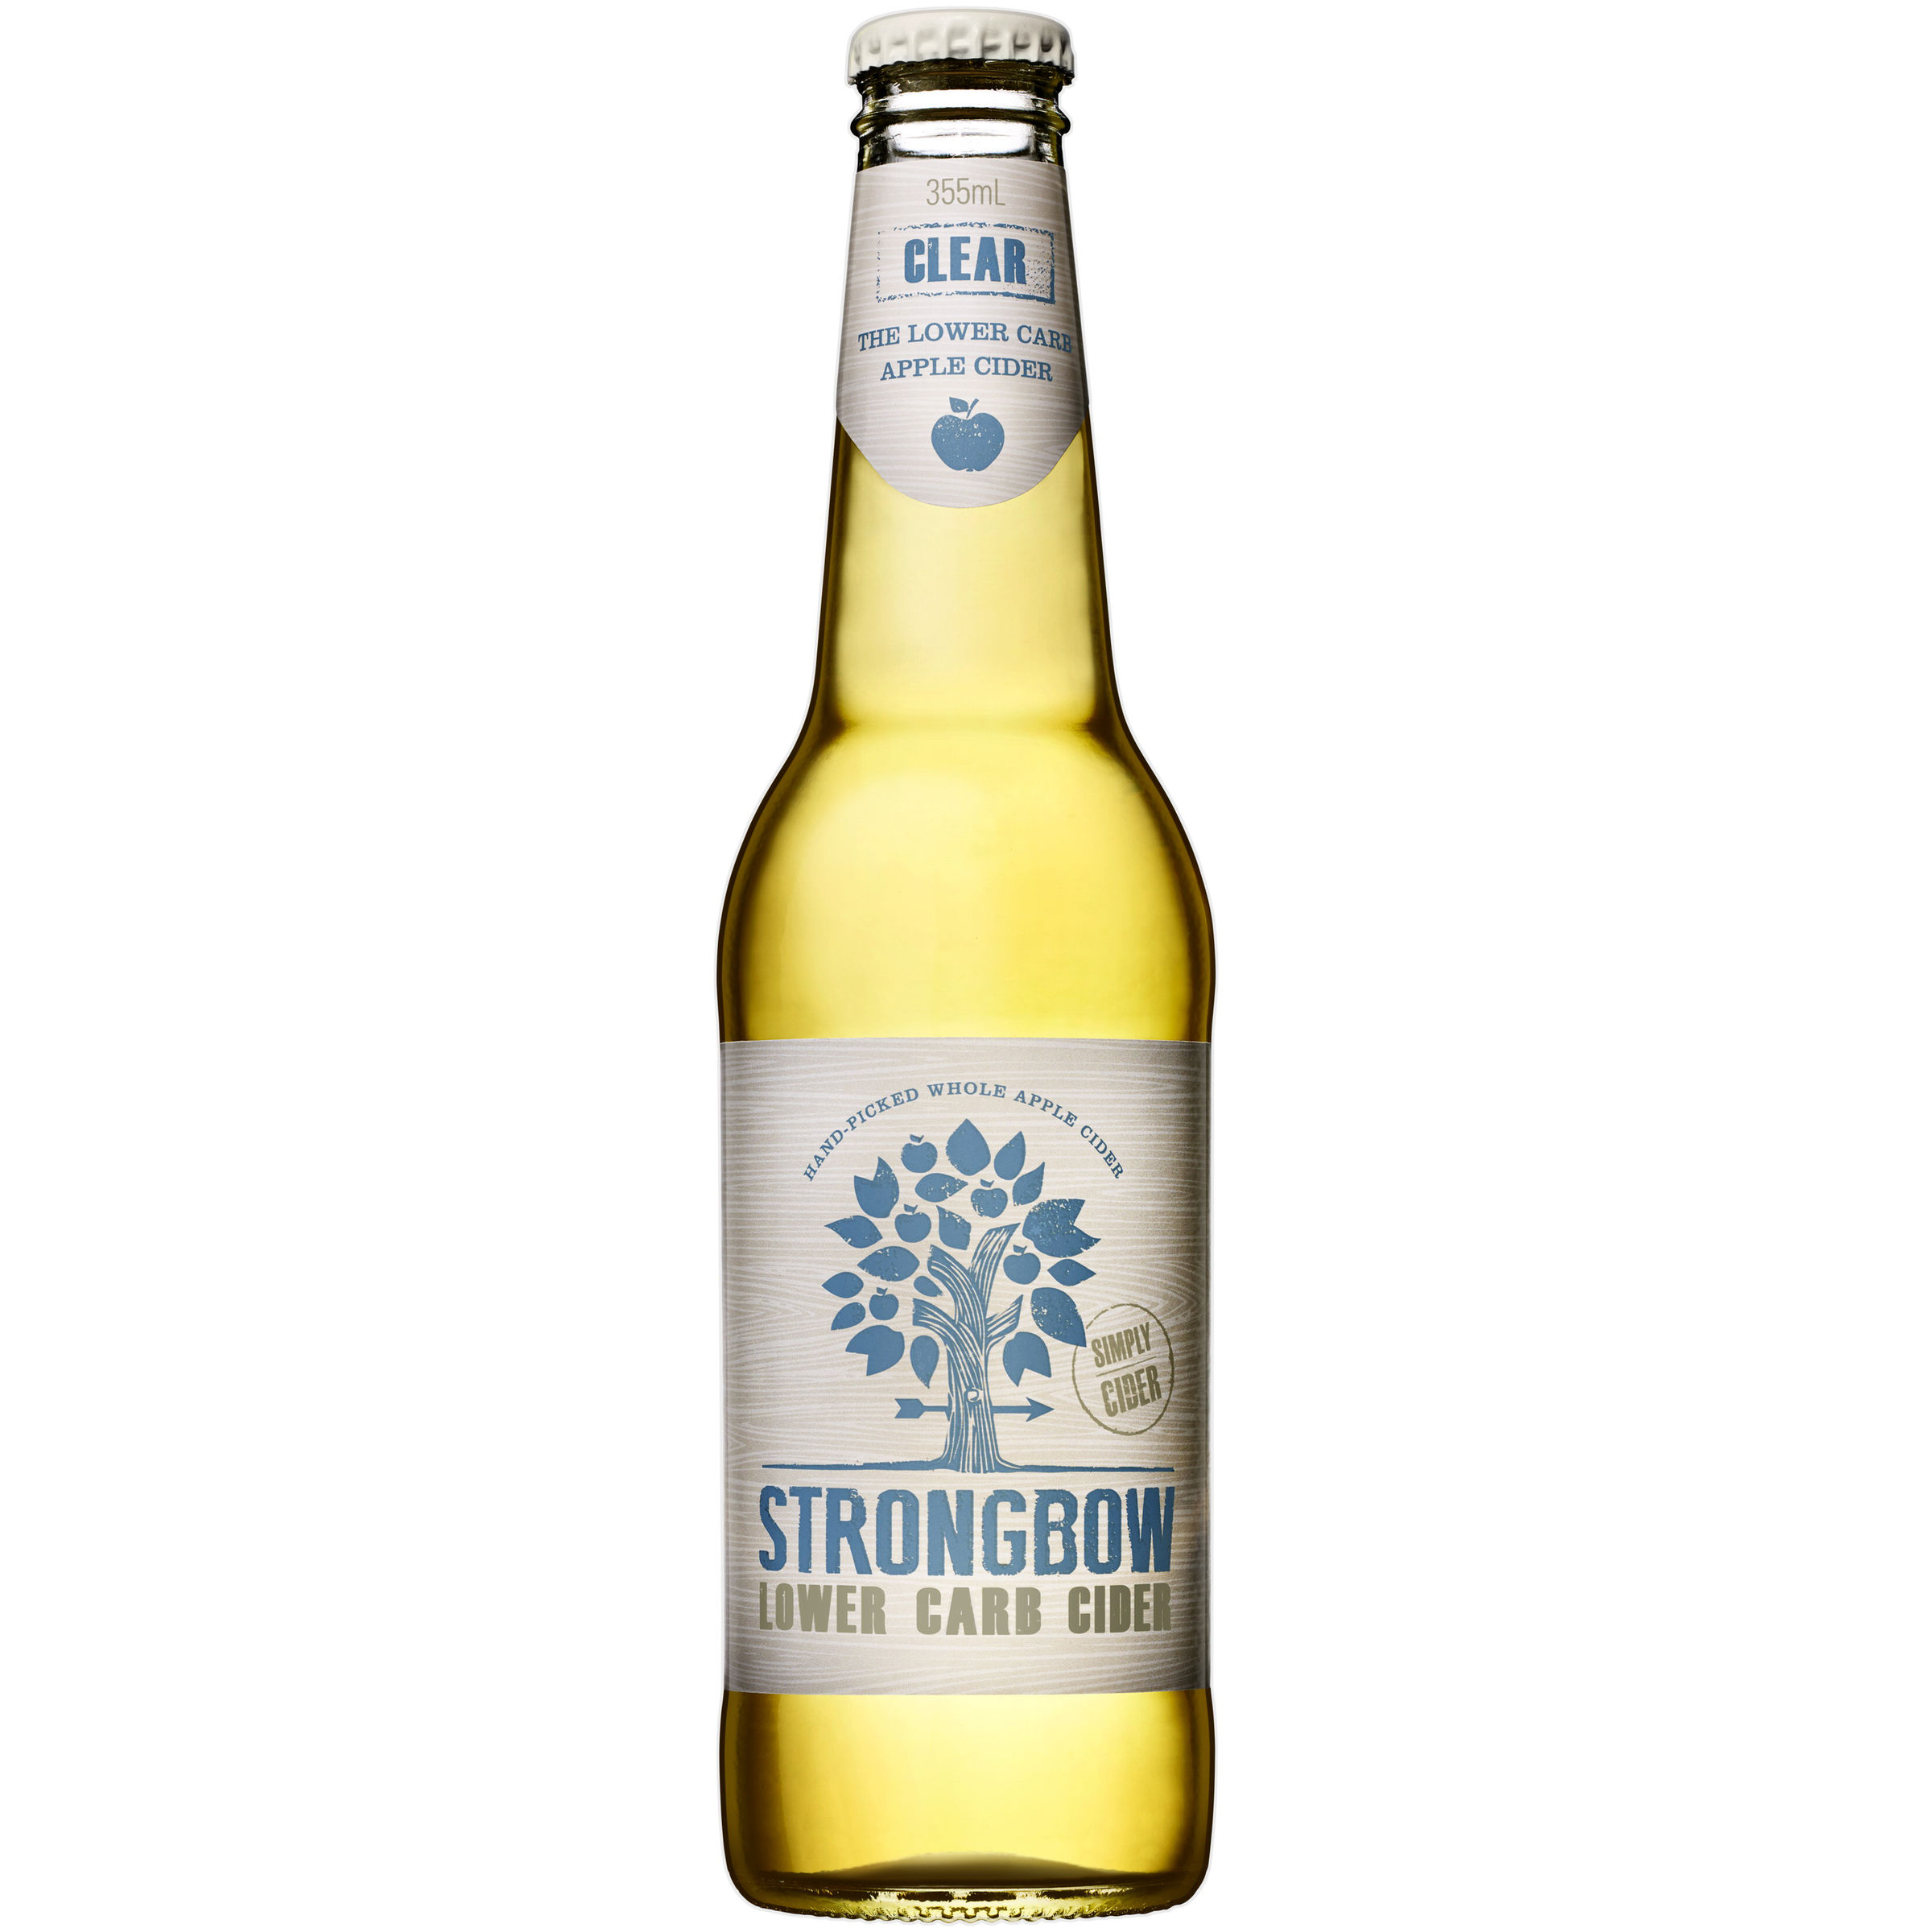 STRONGBOW CLEAR